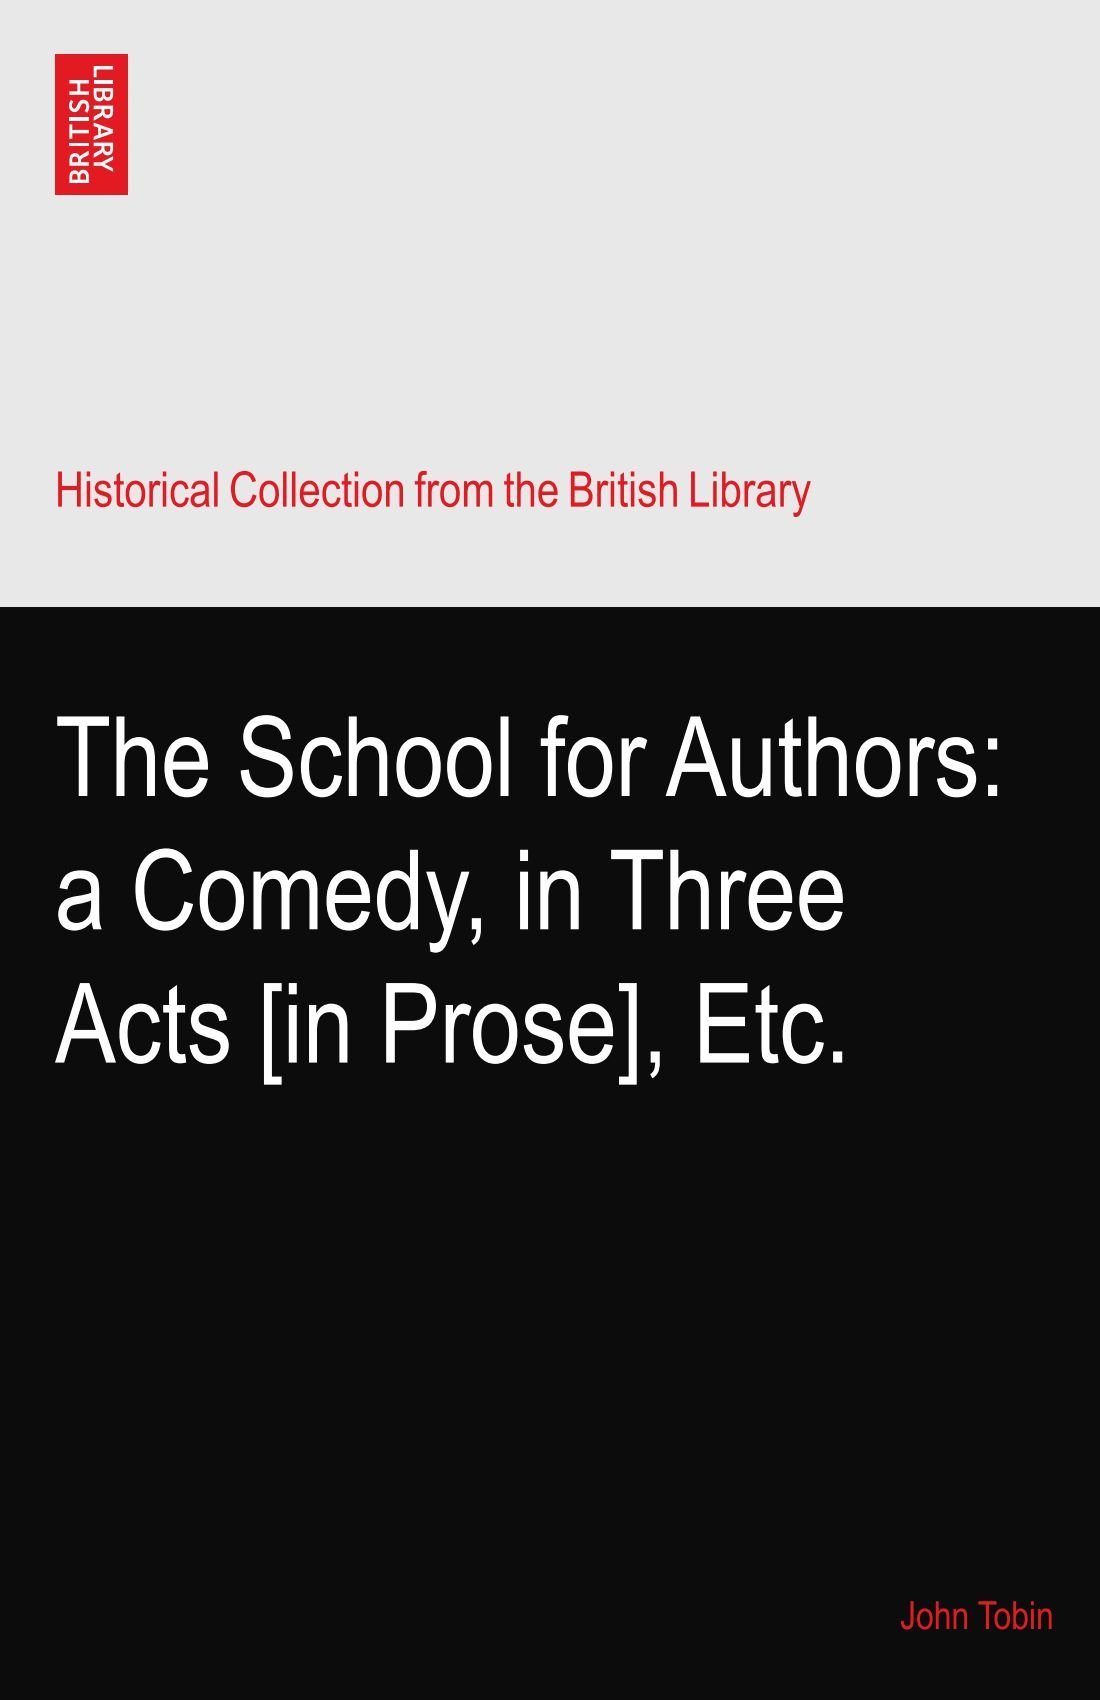 The School for Authors: a Comedy, in Three Acts [in Prose], Etc. pdf epub